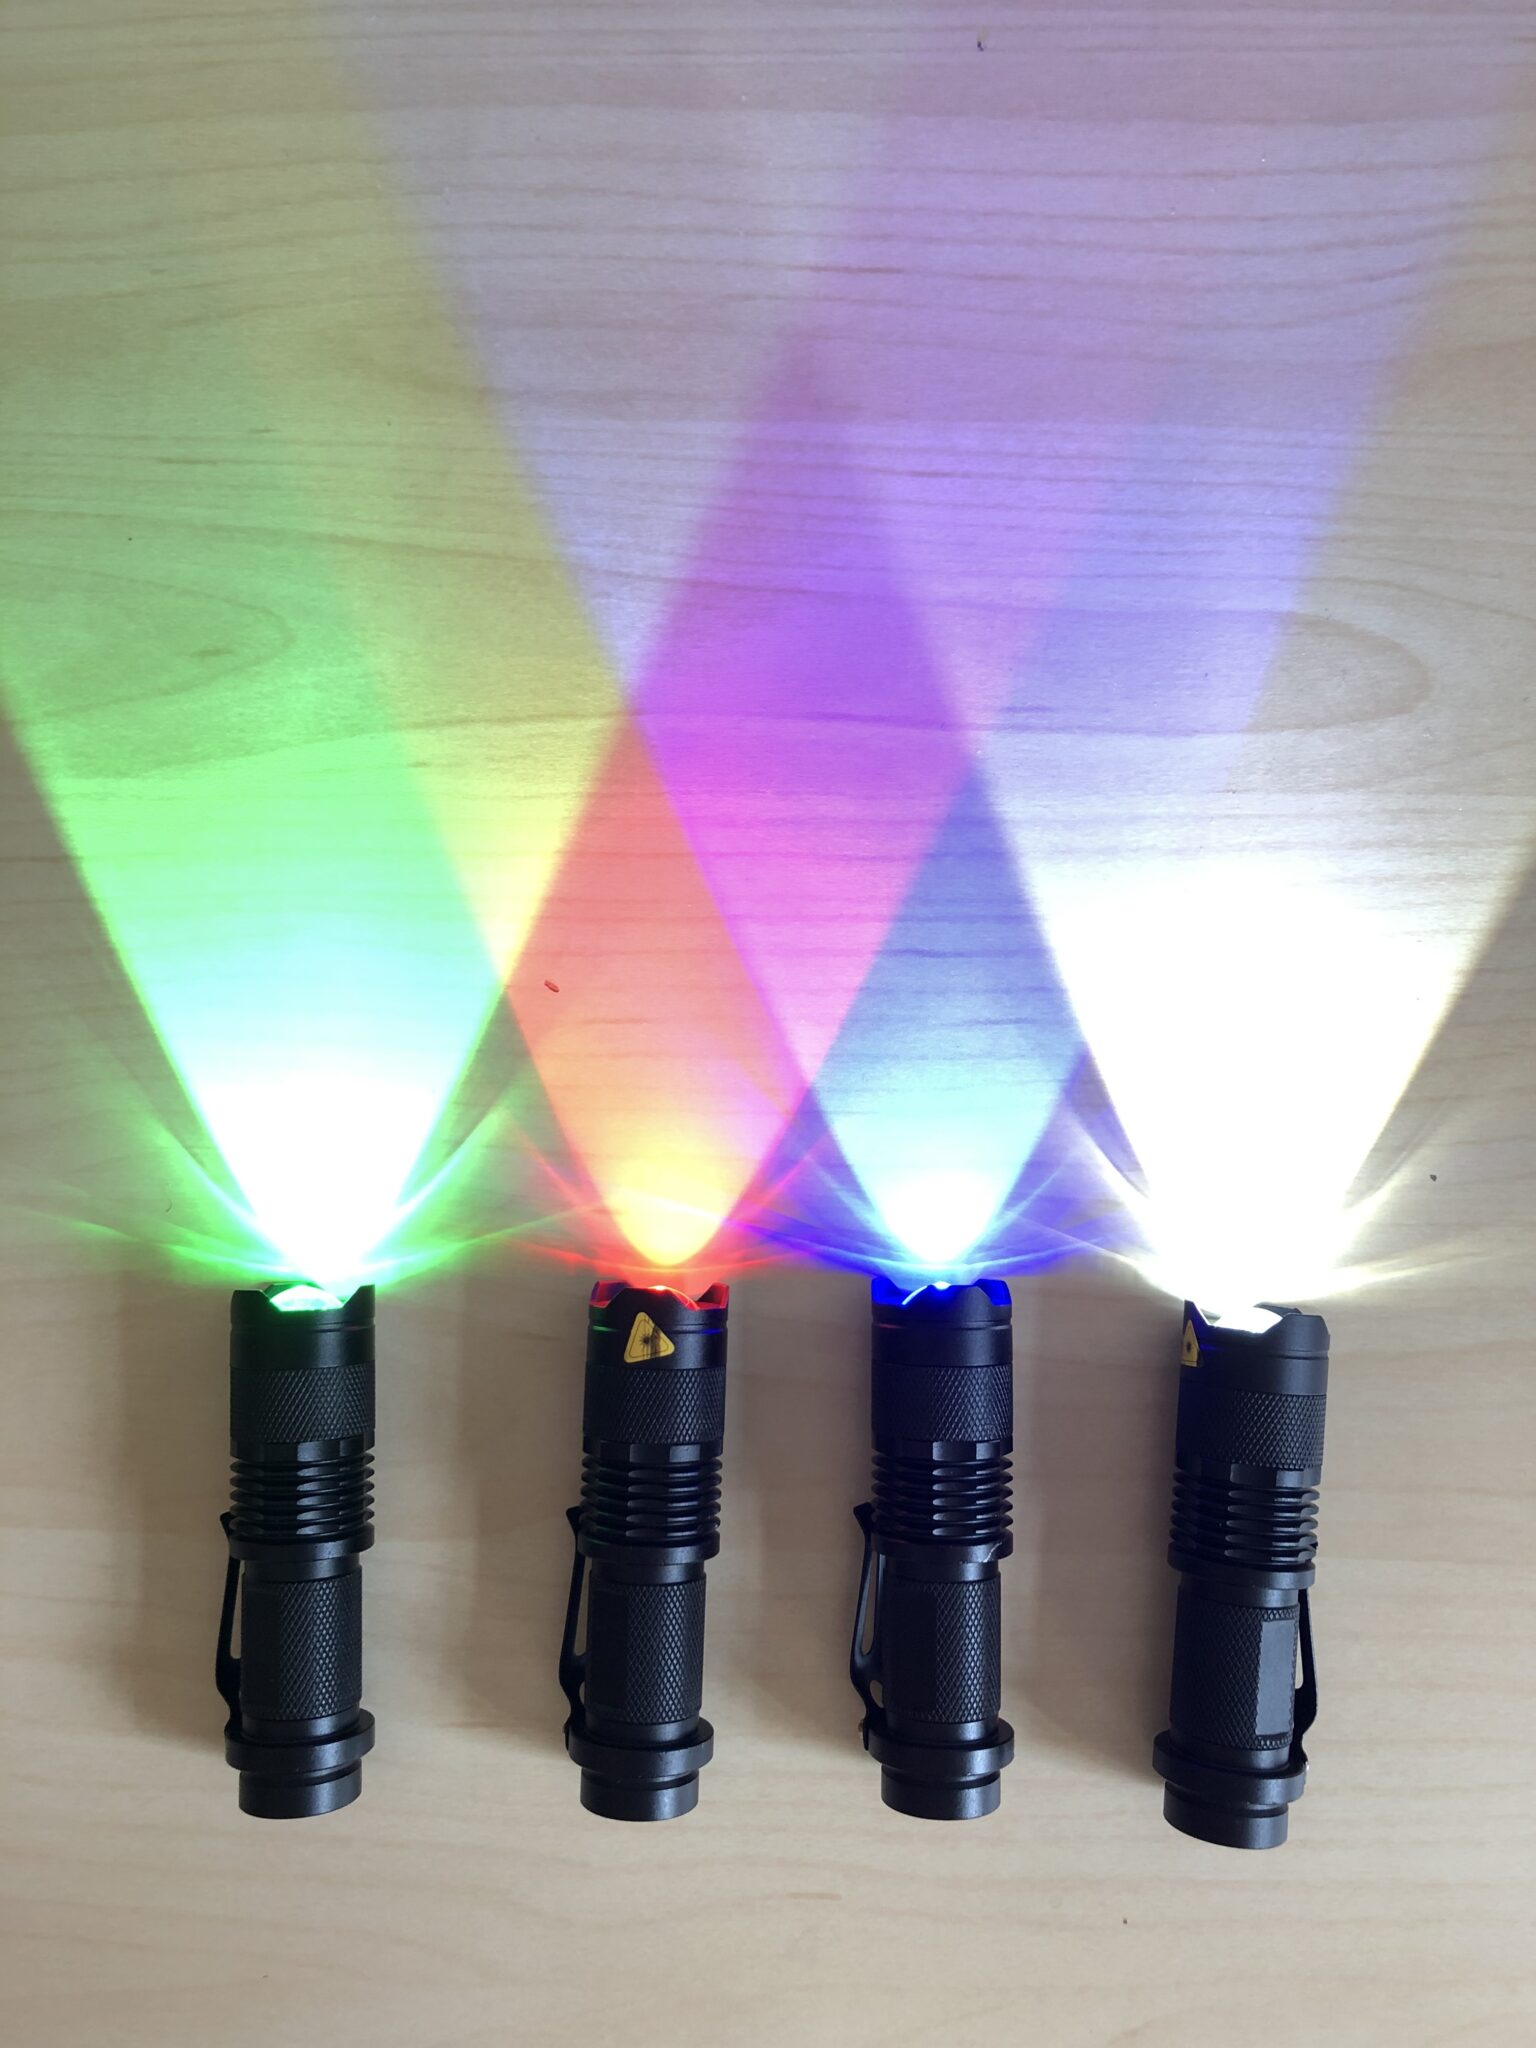 a series of colorful flashlights with their lights turned on